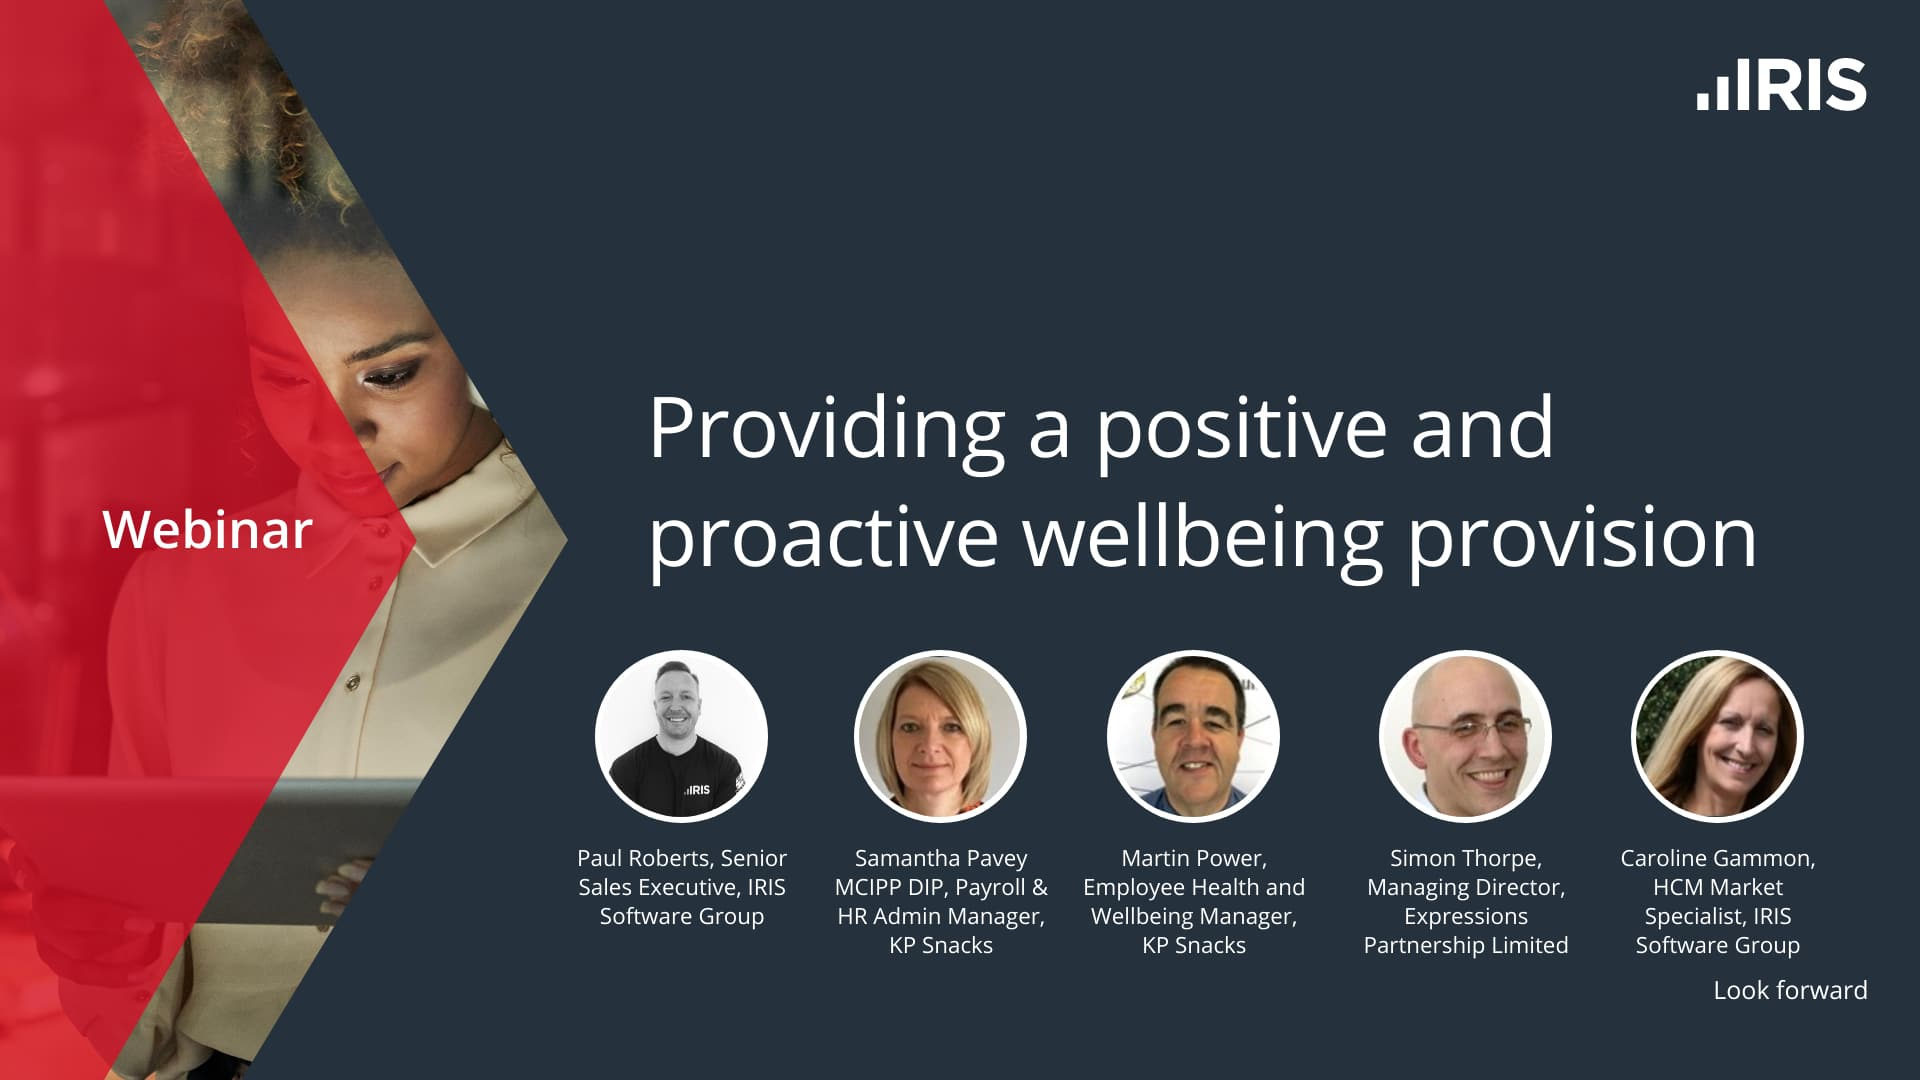 Providing a positive and proactive wellbeing provision